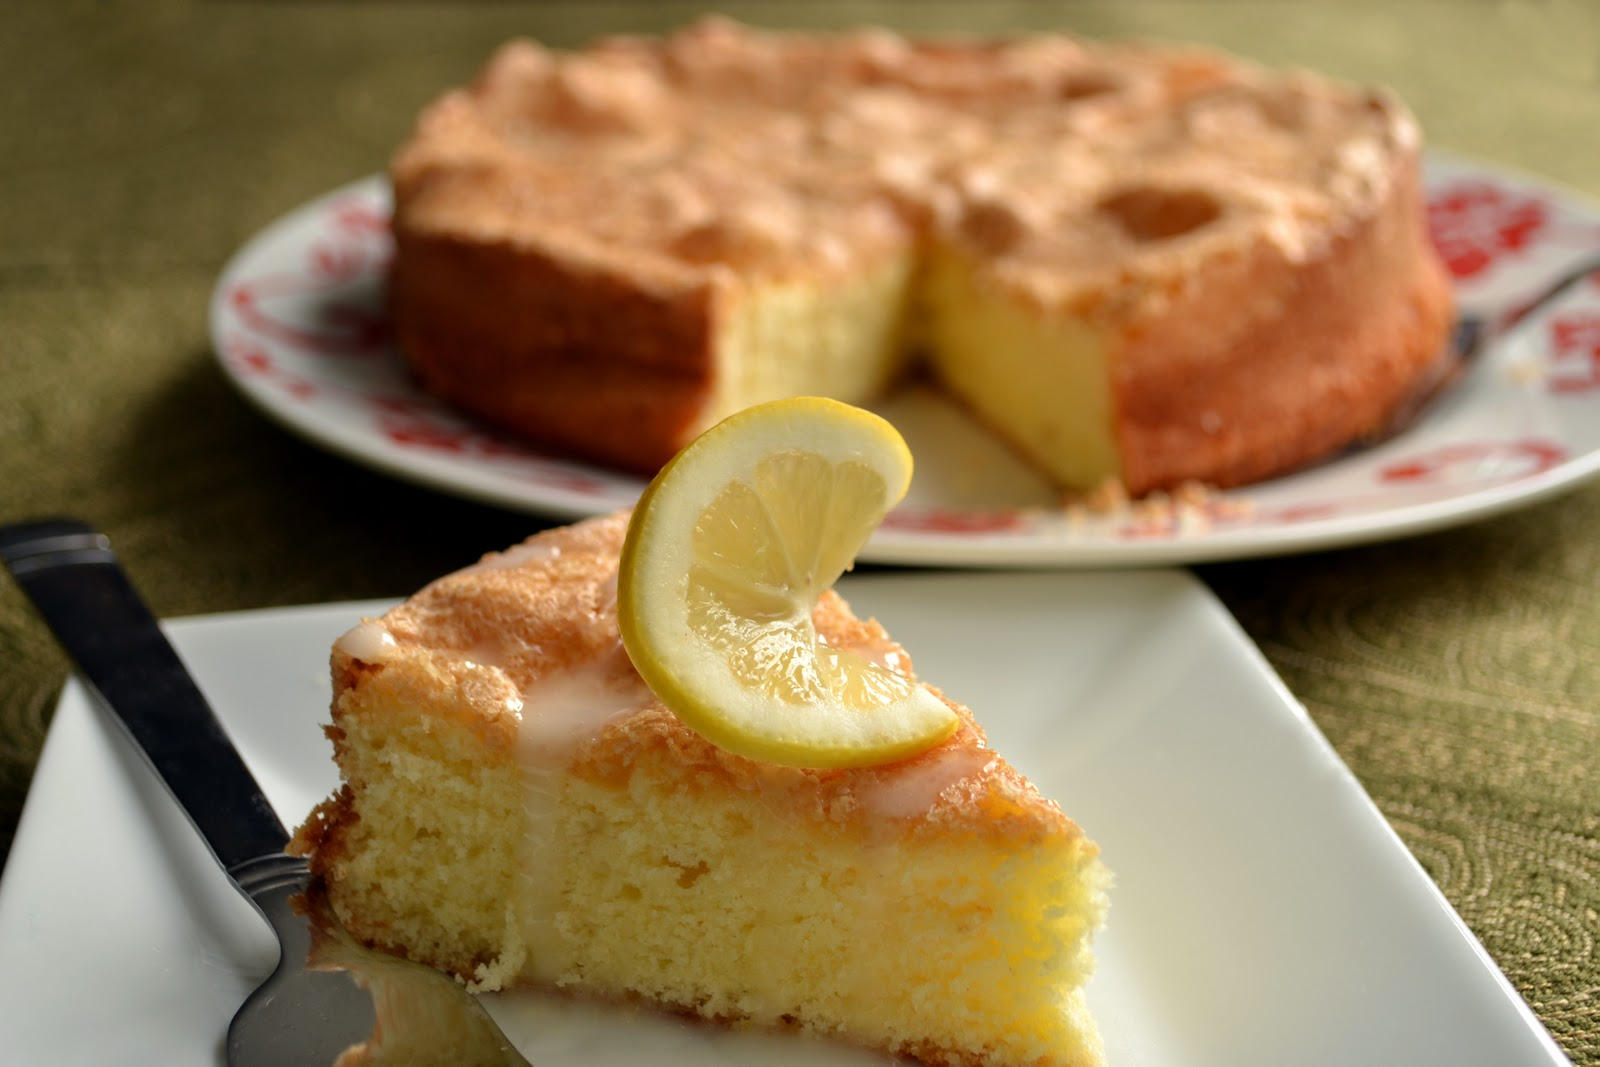 Lawyer Loves Lunch: Meyer Lemon Olive Oil Cake